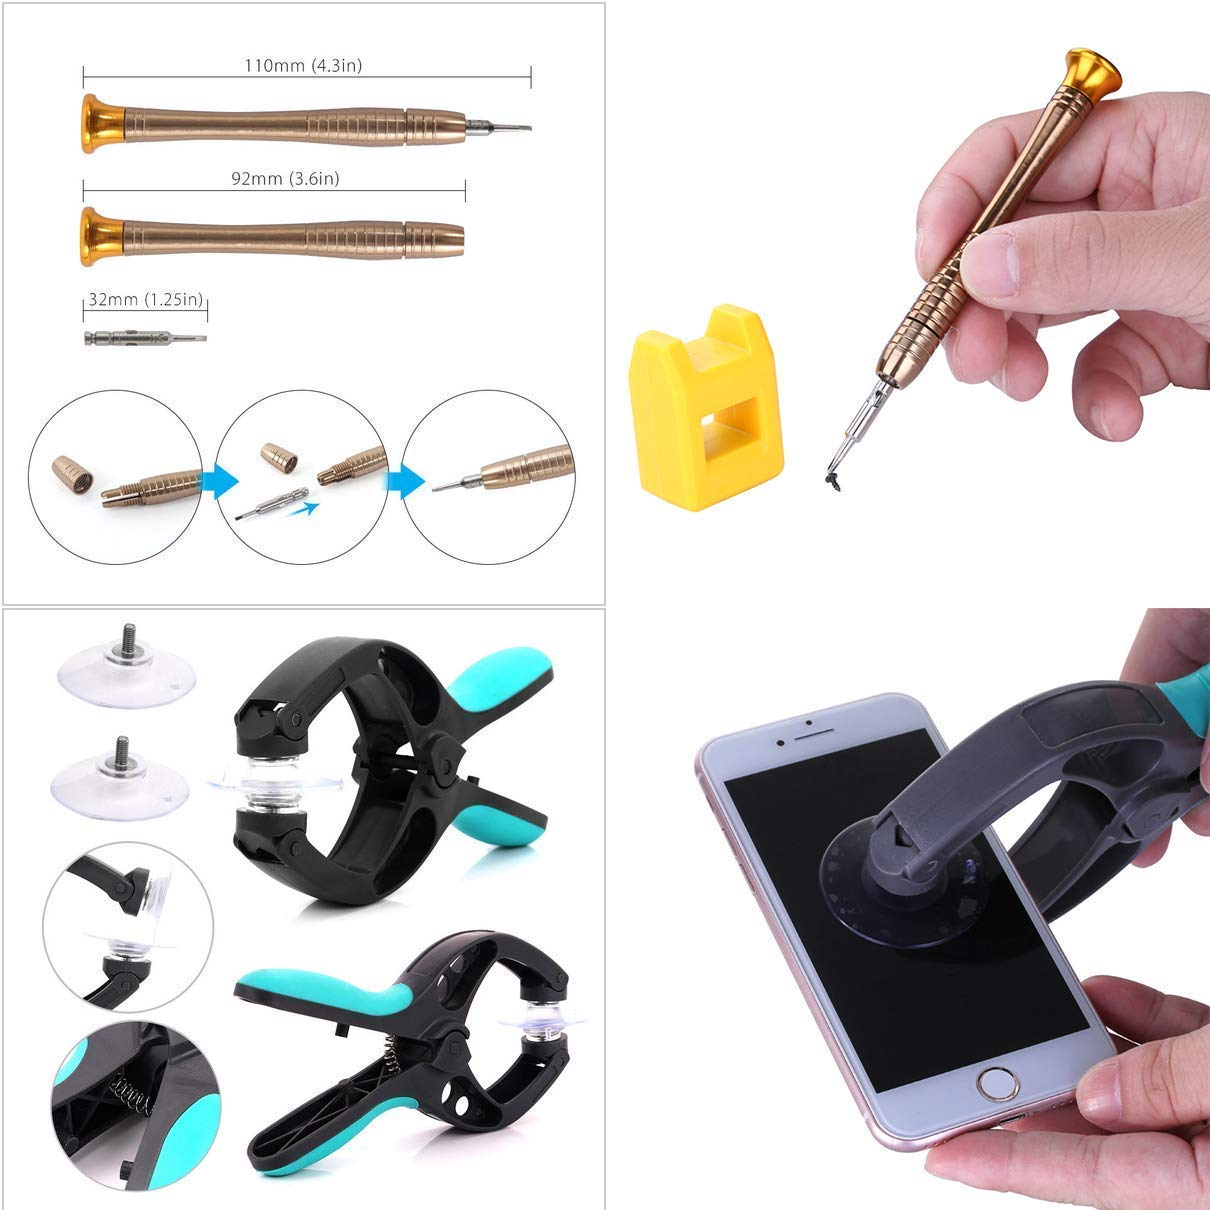 37 in 1 Professional Repair Tool kit Tool kit for Mobile Phone and Smartphone /& Multimedia or Other Small appliances Mobile Phone Repair Tools Kit